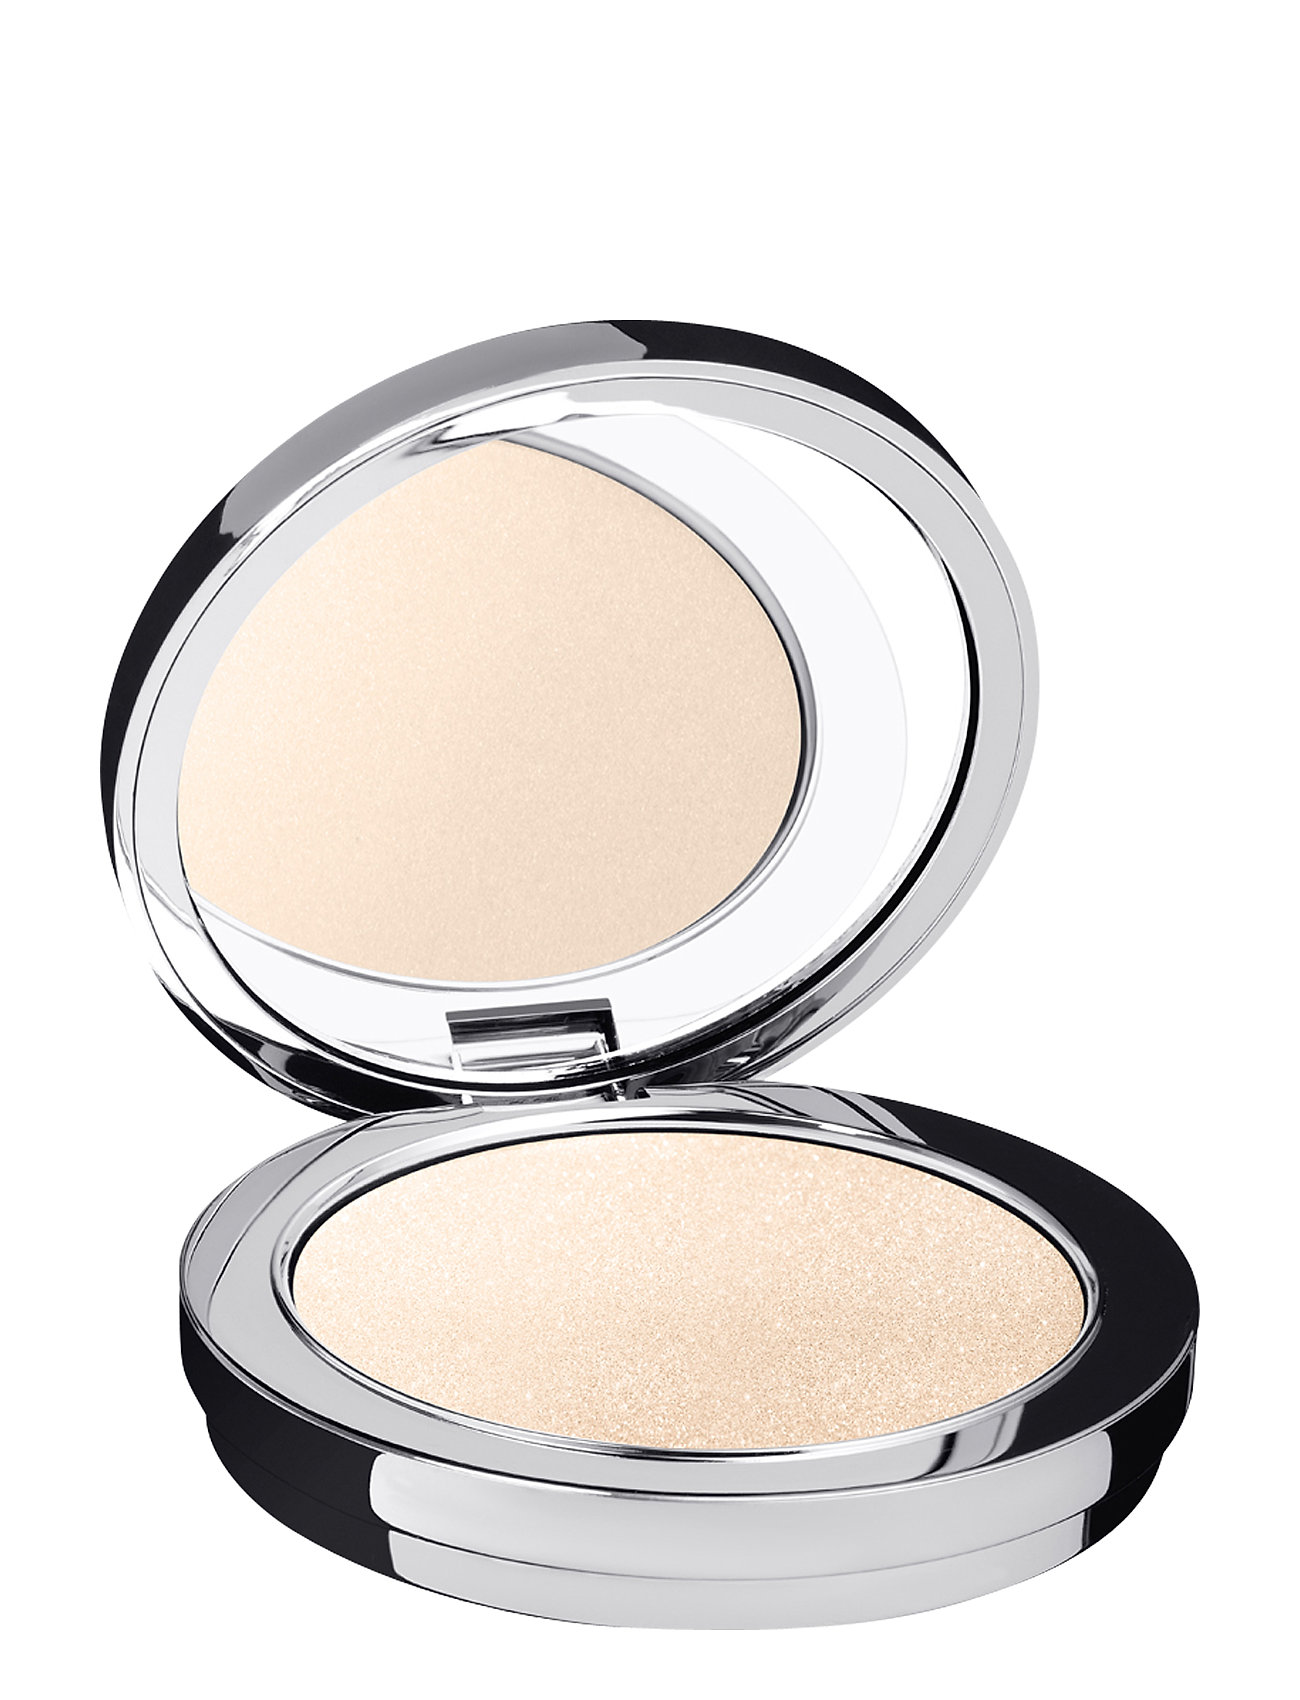 Rodial Instaglam Compact Deluxe Highlighter Powder 02 - 02